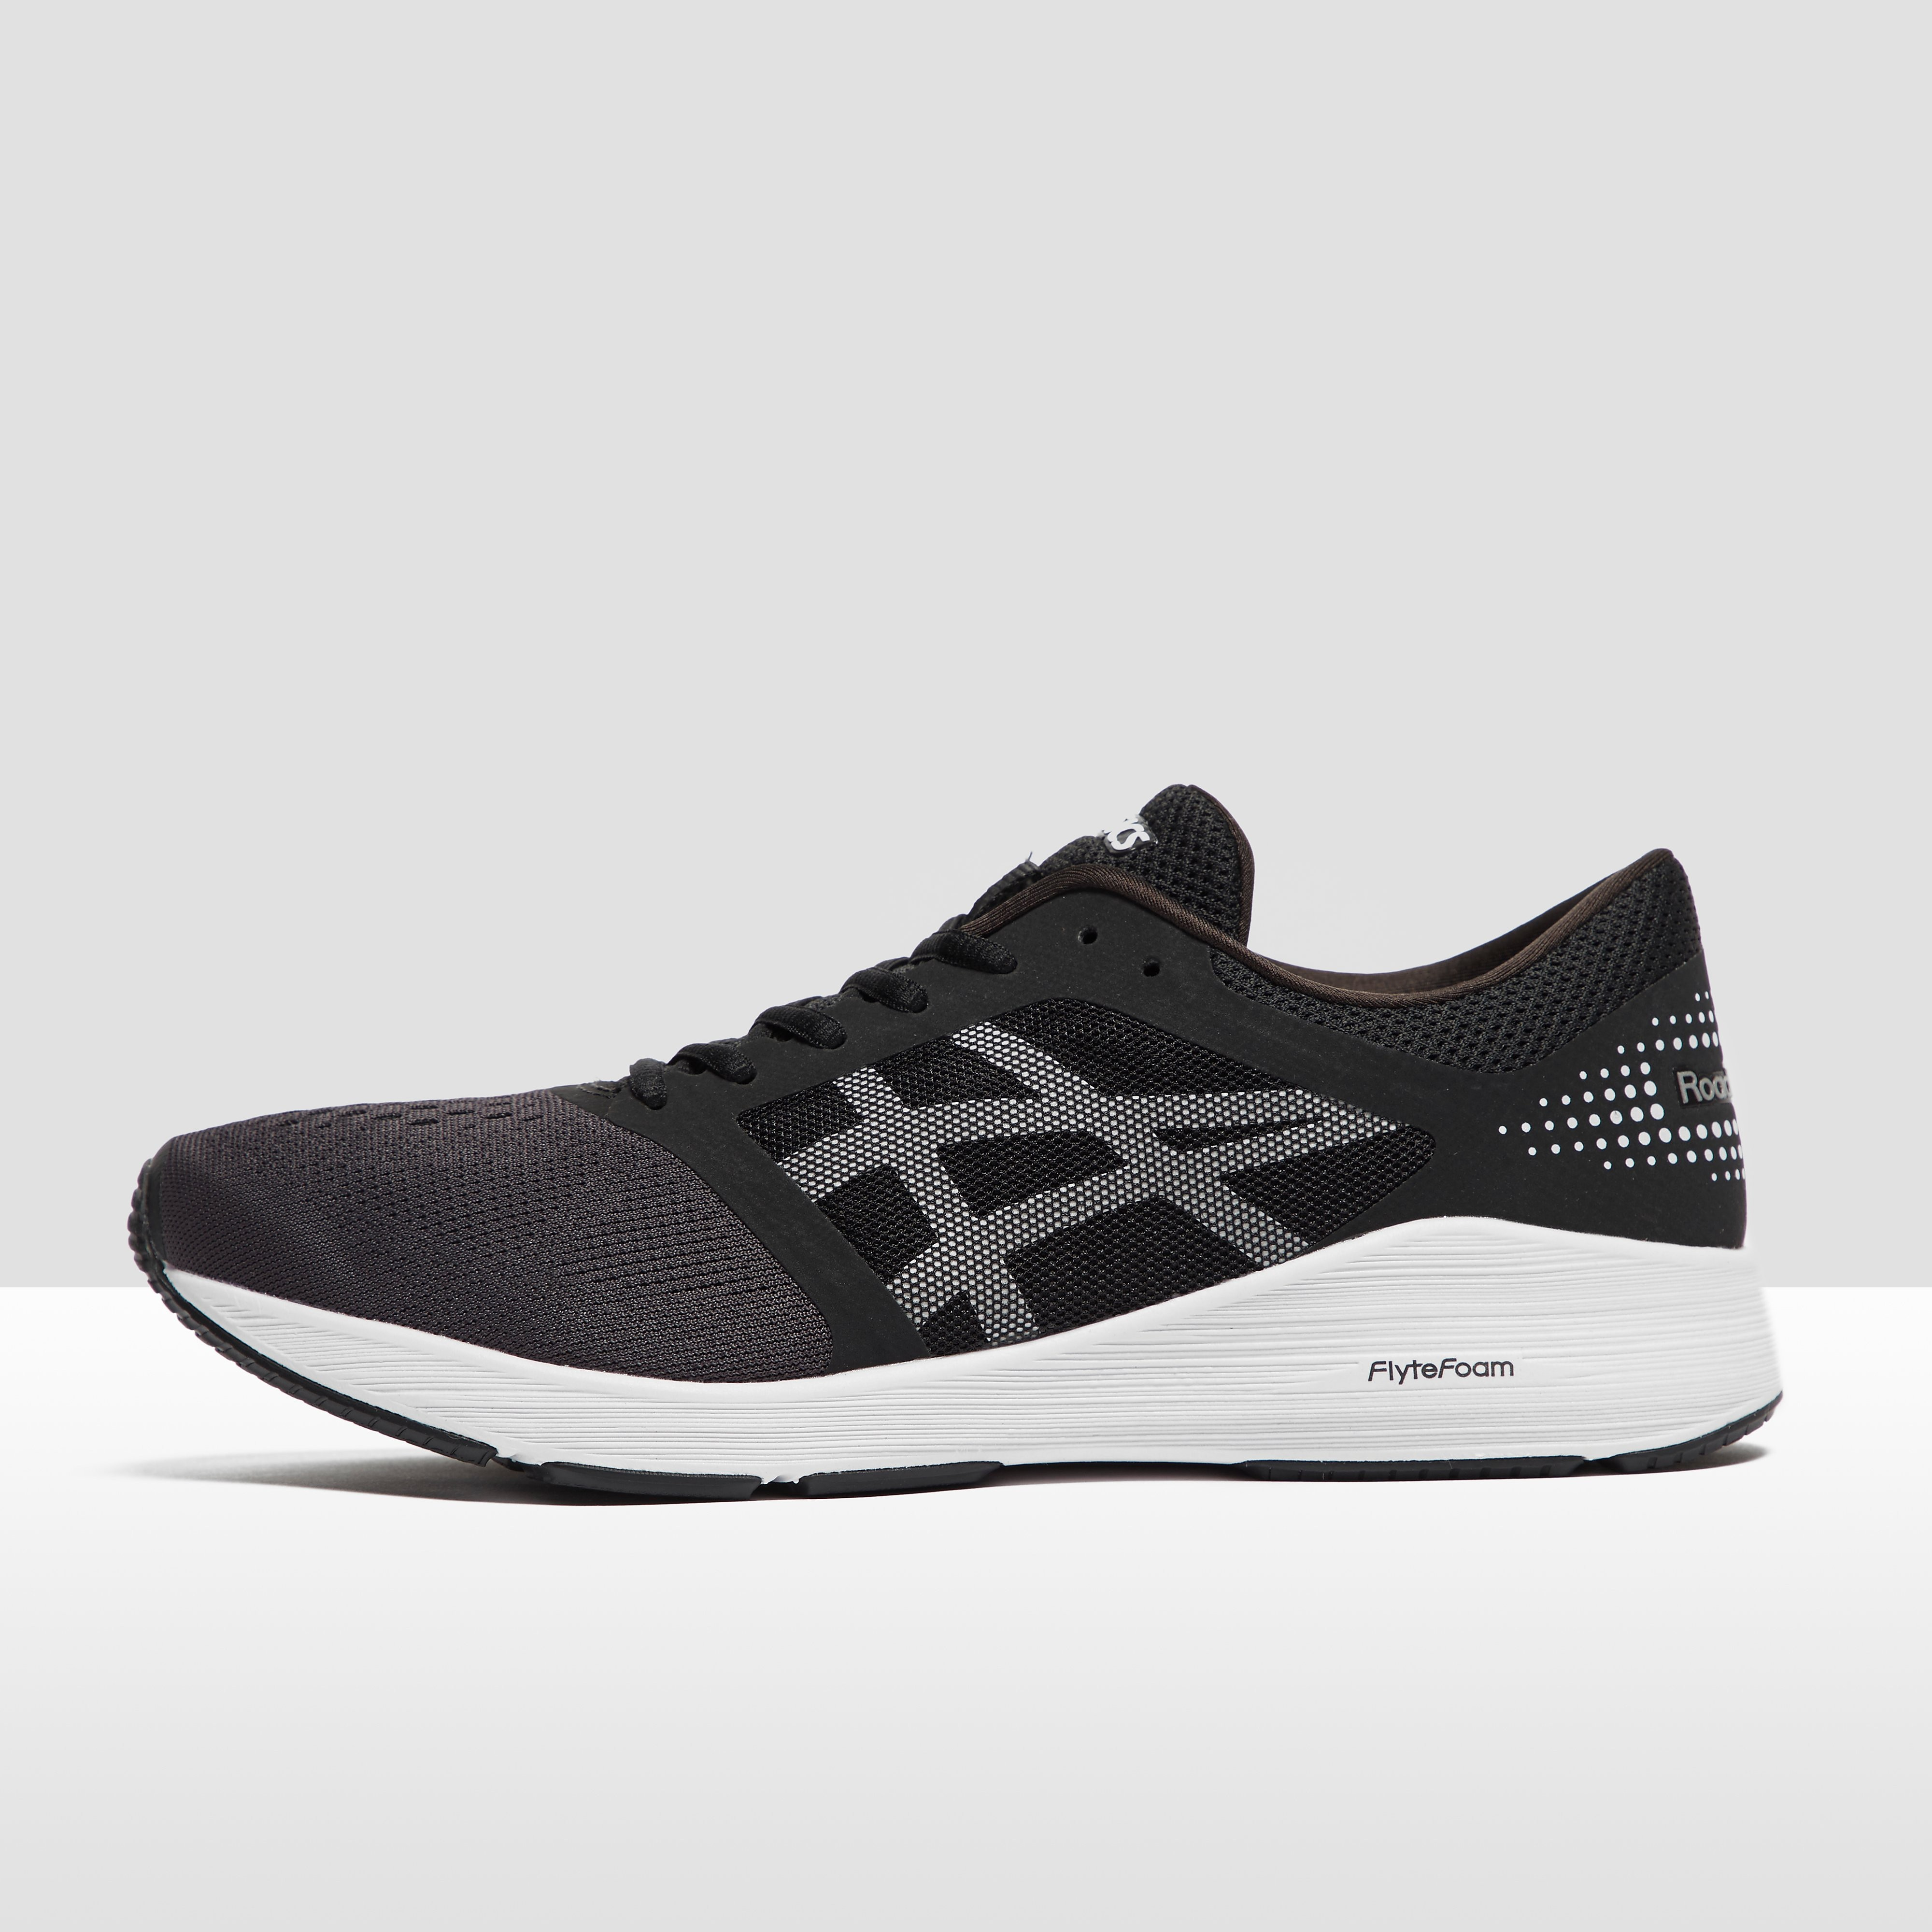 ASICS RoadHawk FF Men's Running Shoes